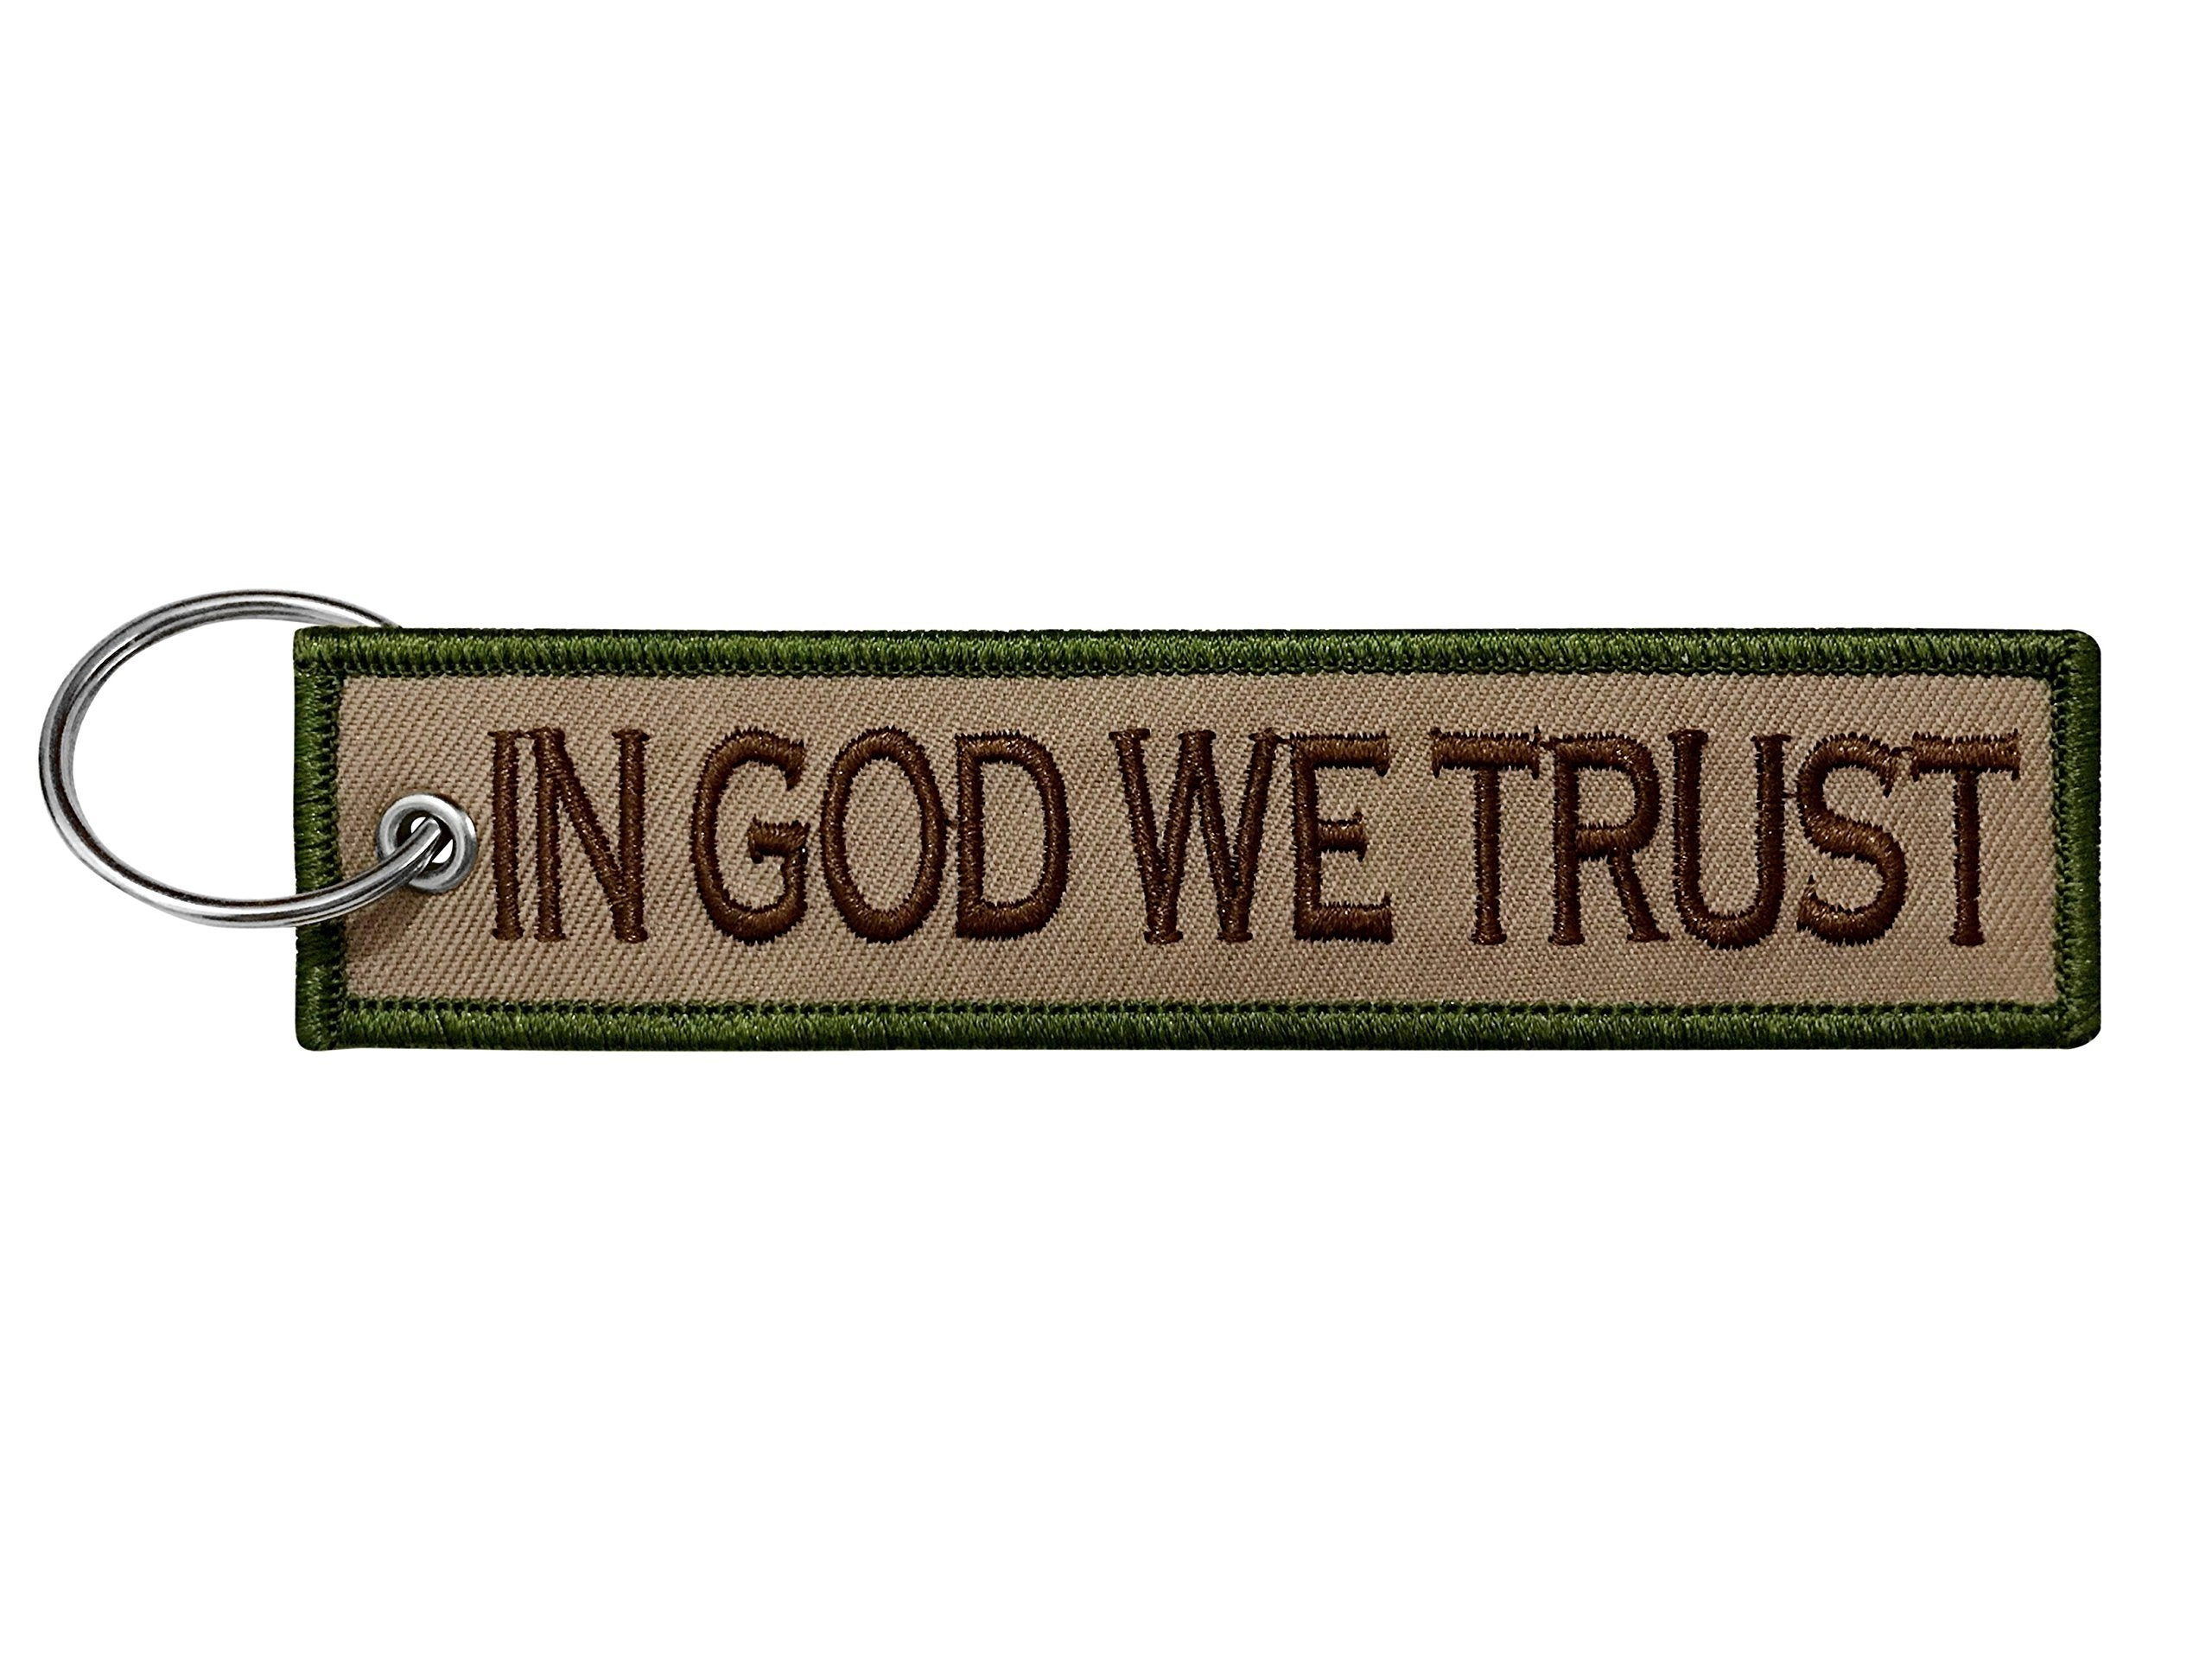 'In God We Trust' Key Tag Car / Motorcycle Keychain - SonsofOdin Co Goth Viking Biker Jewellry